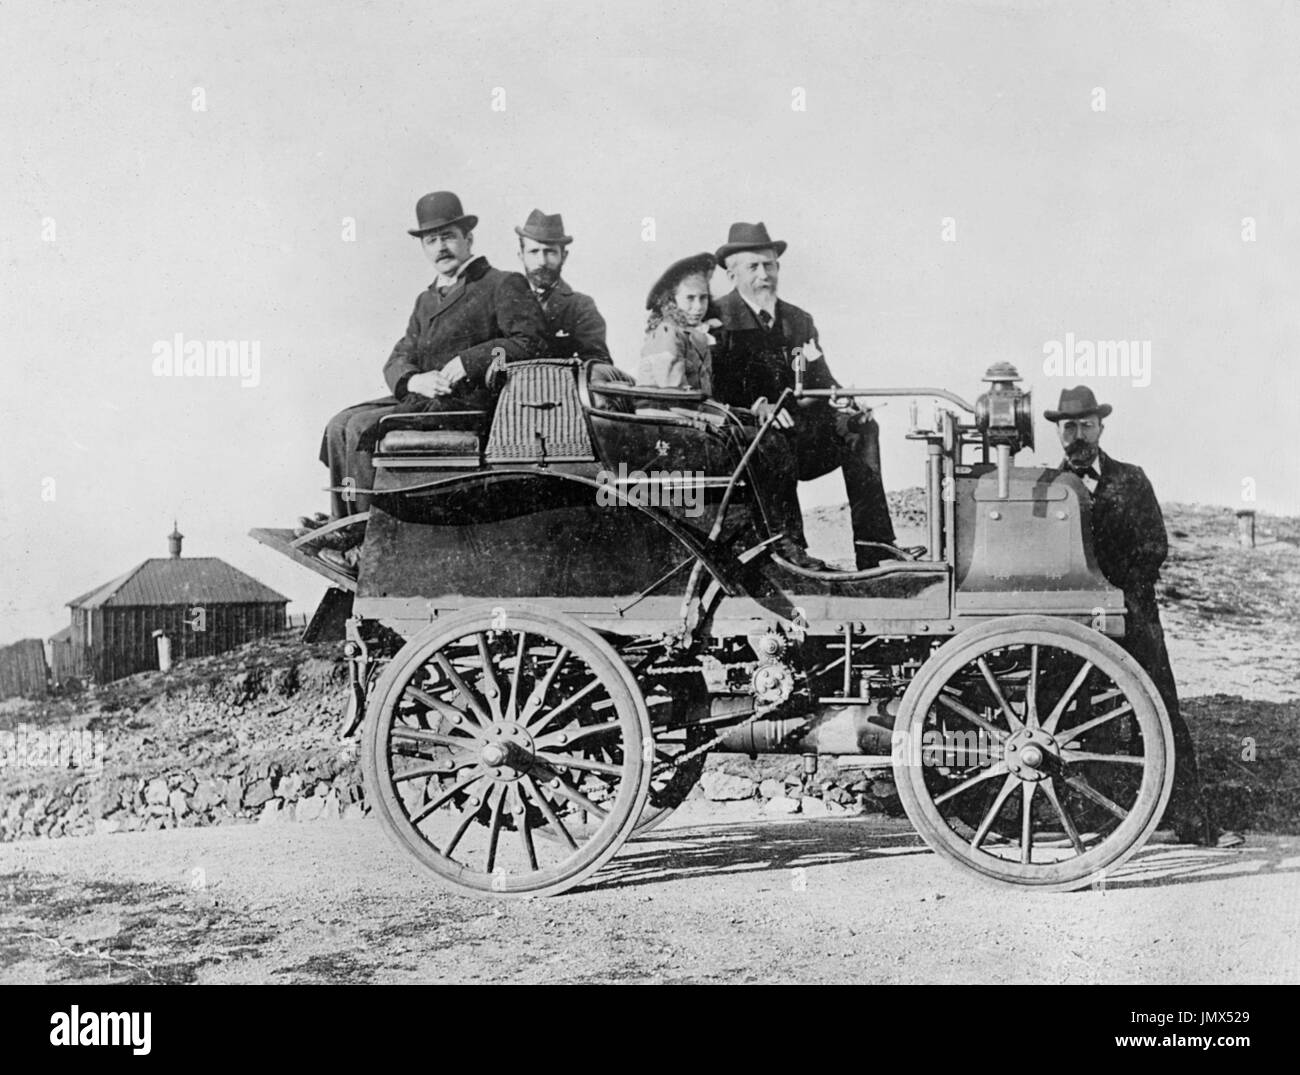 Hon Evelyn Ellis with his daughter and JS Critchely (Daimler works manager). 1896 Daimler, having just climbed Malvern Beacon in the car. - Stock Image